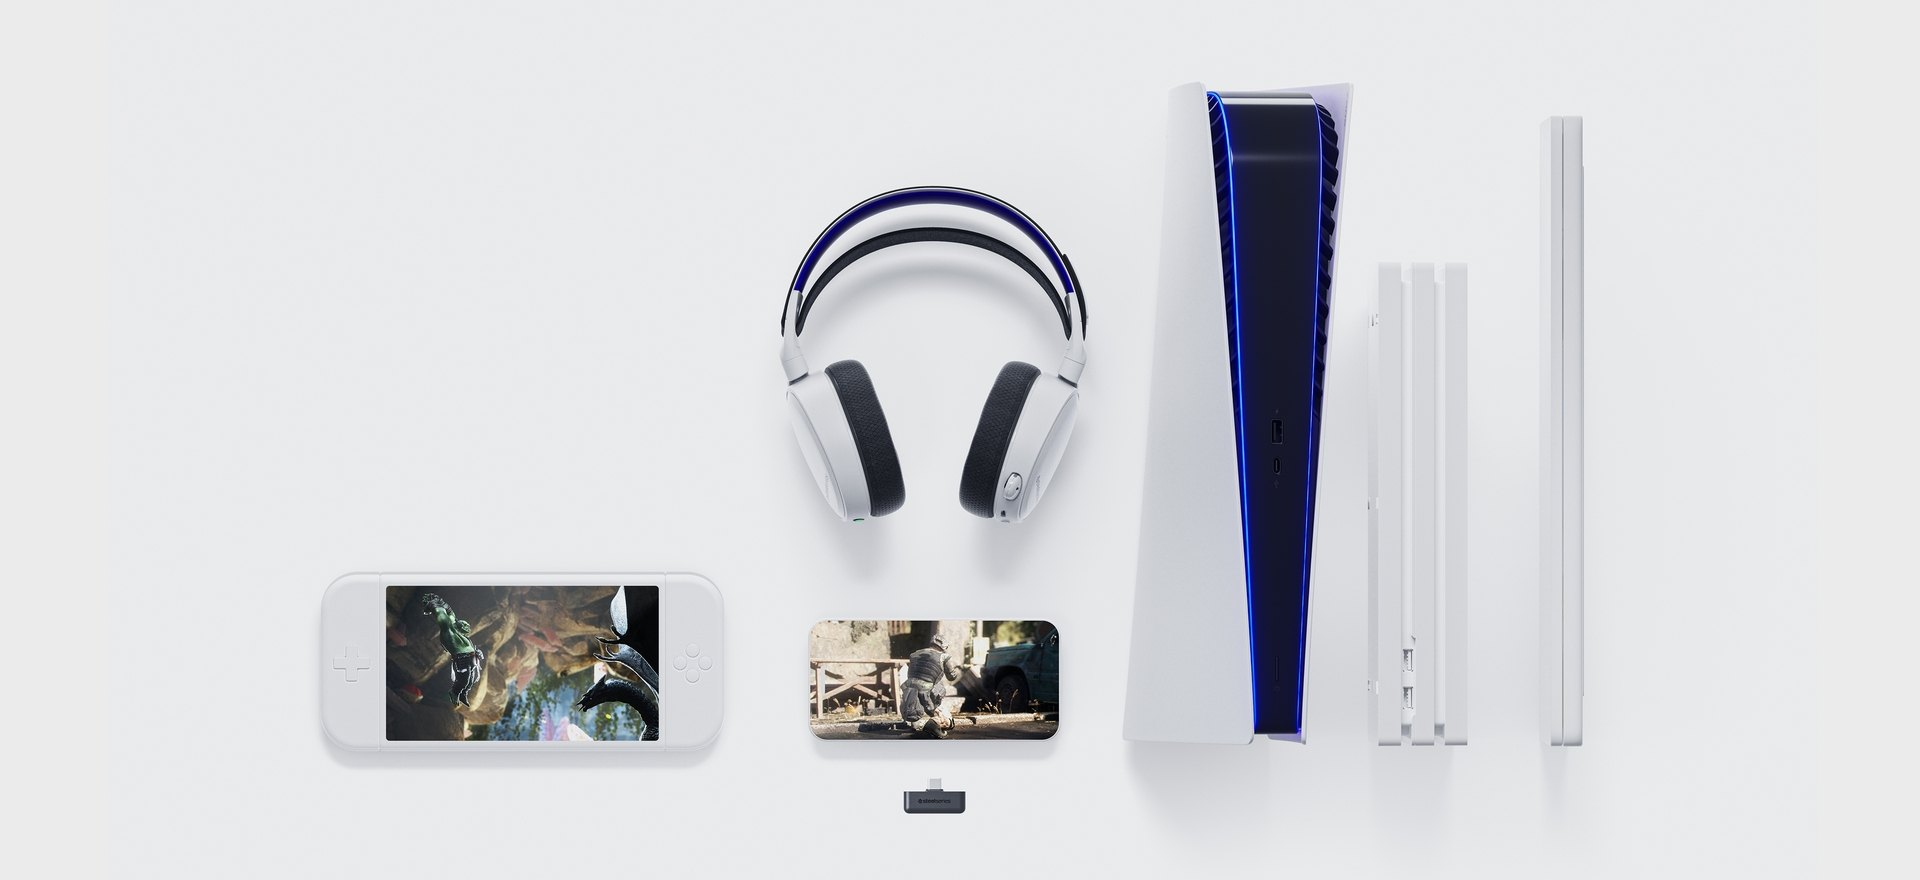 Extreme versatility - Game everywhere with the compact USB-C dongle for a seamless transition between PlayStation 5, PS4, PC, Android, and Nintendo Switch.